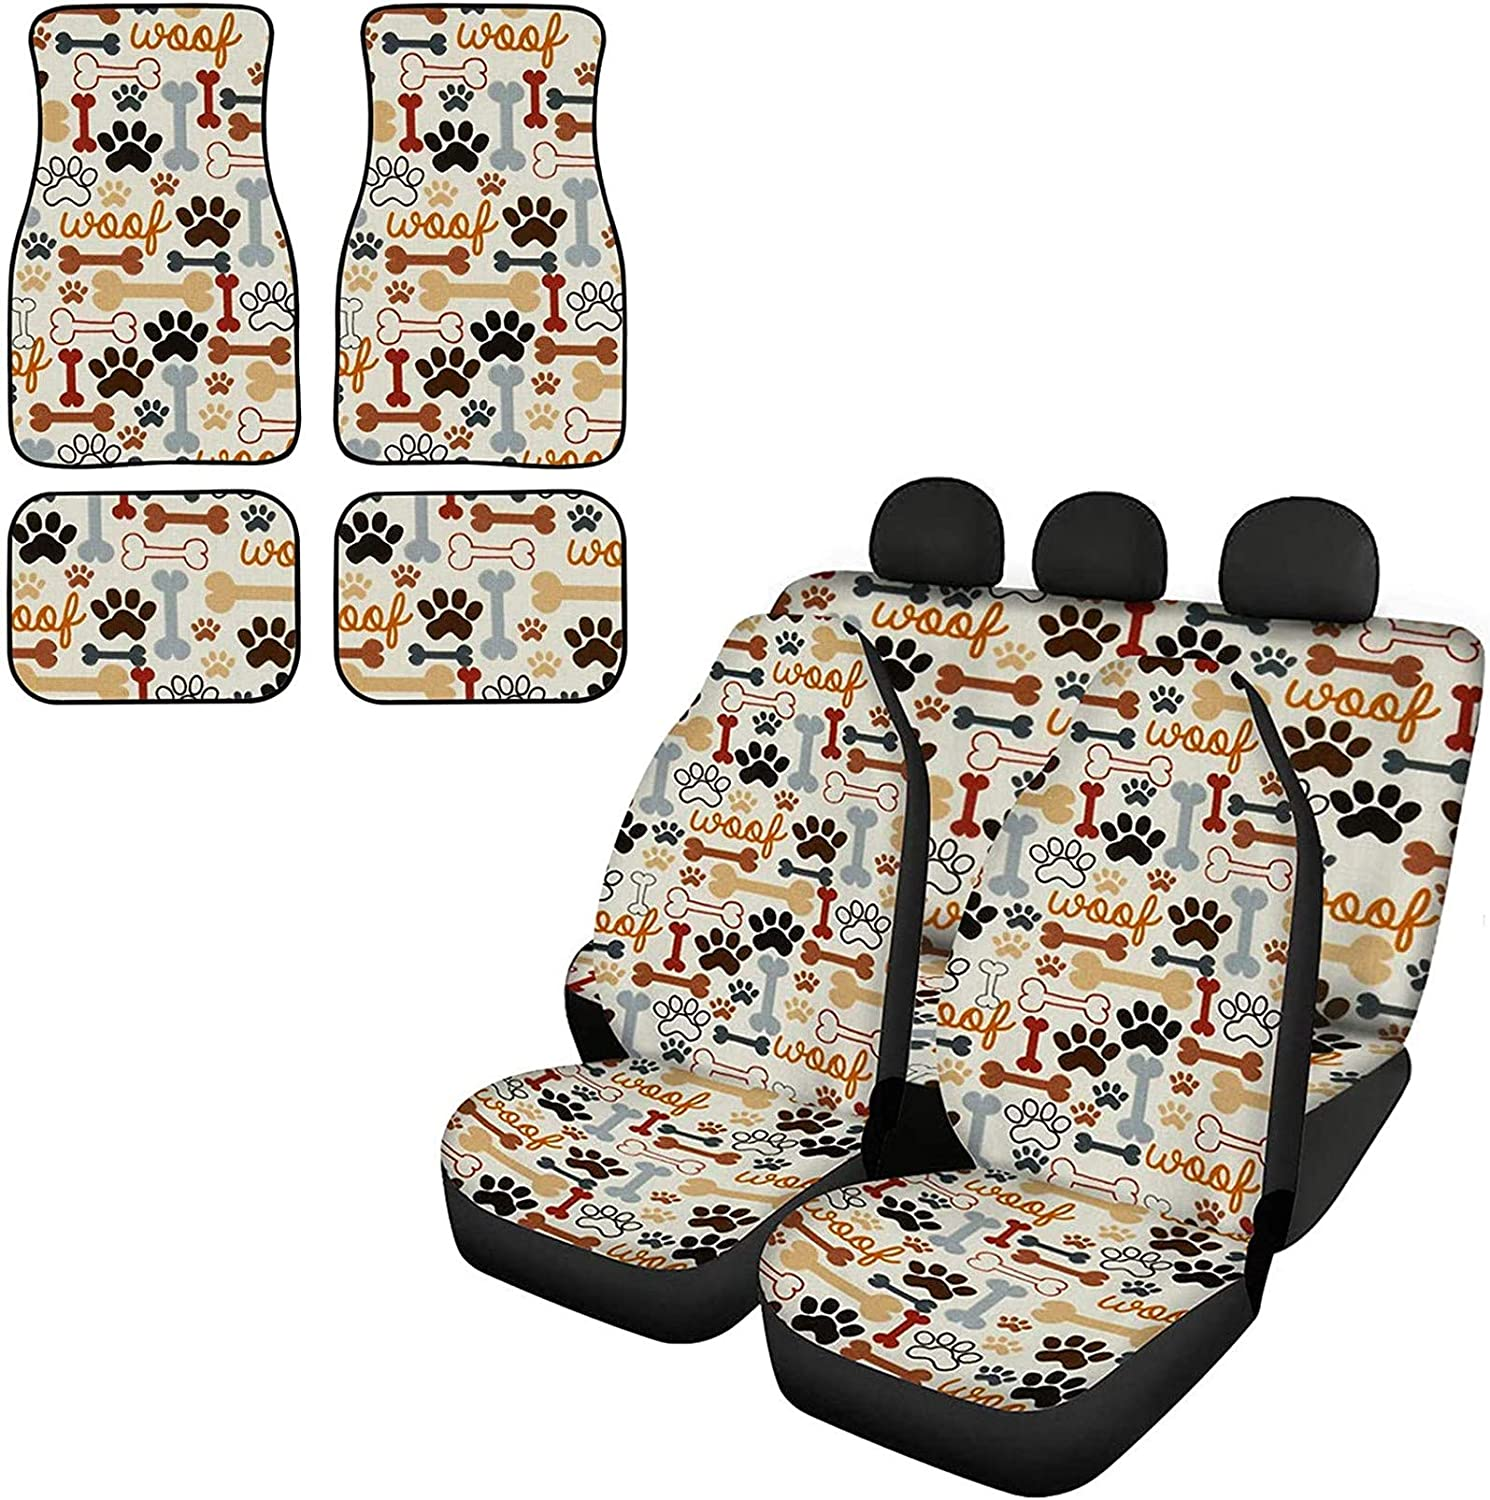 FUSURIRE Car Seat Covers Sales of SALE items from new works and Max 44% OFF Floor Mats Full Cute Pa Paw Set Dog